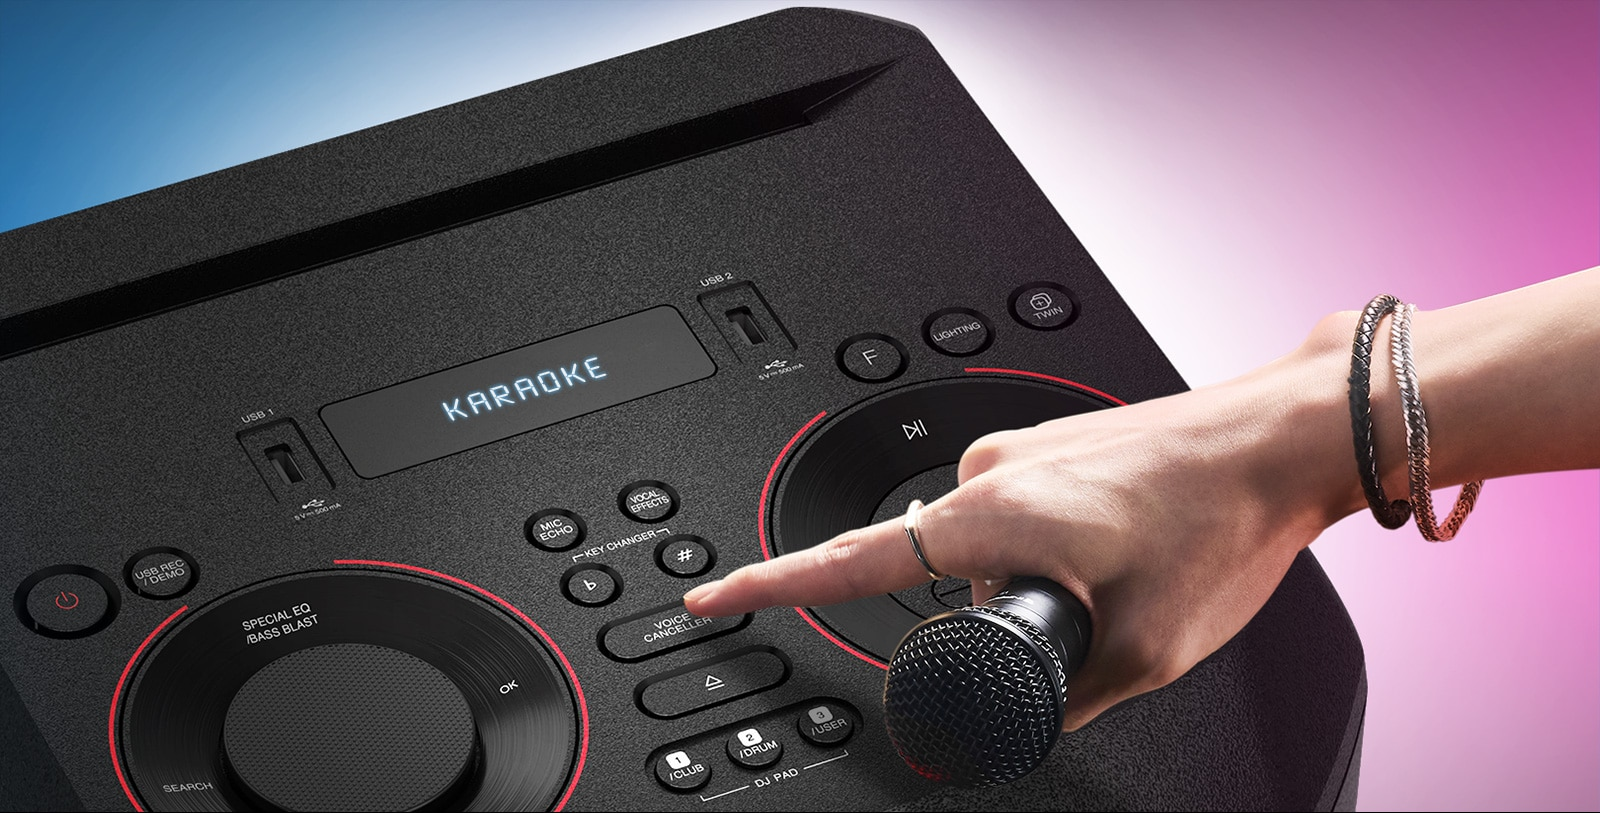 A hand holding a microphone tries to press the Voice canceller button on the top of LG XBOOM.